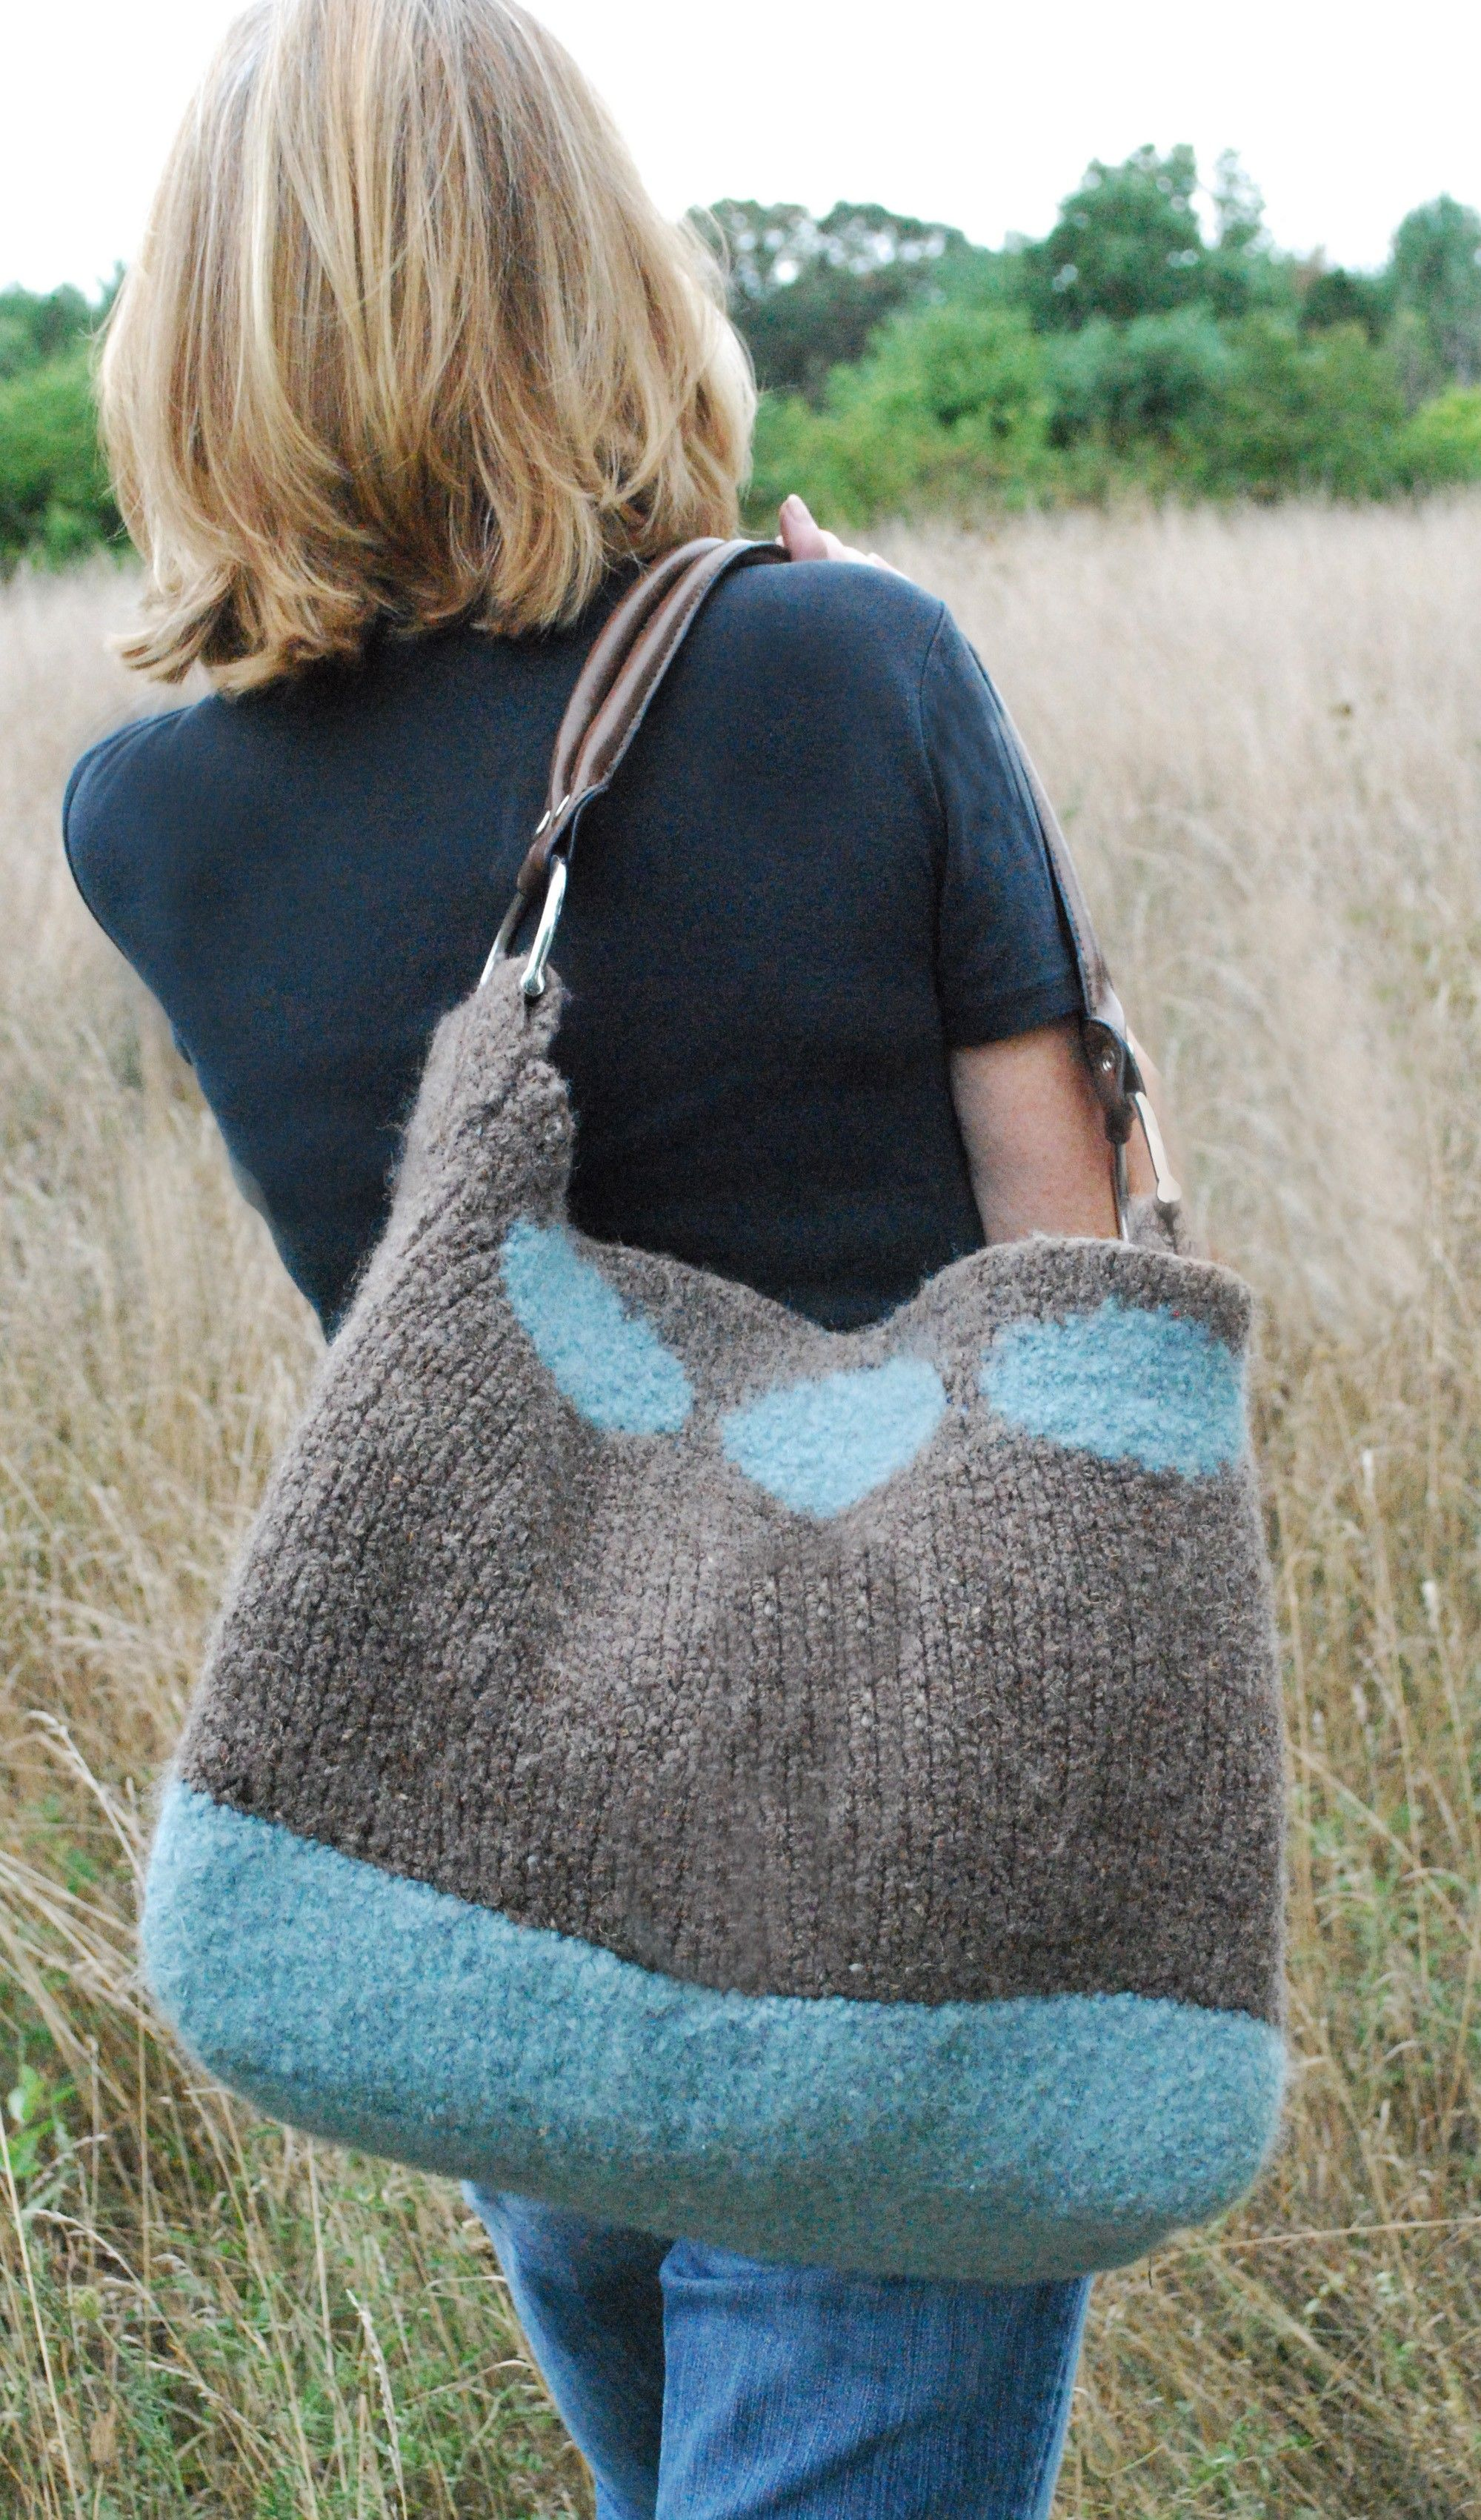 The Soho Bag (Loom) | Loom Knitting Ideas | Pinterest | Soho, Bag ...